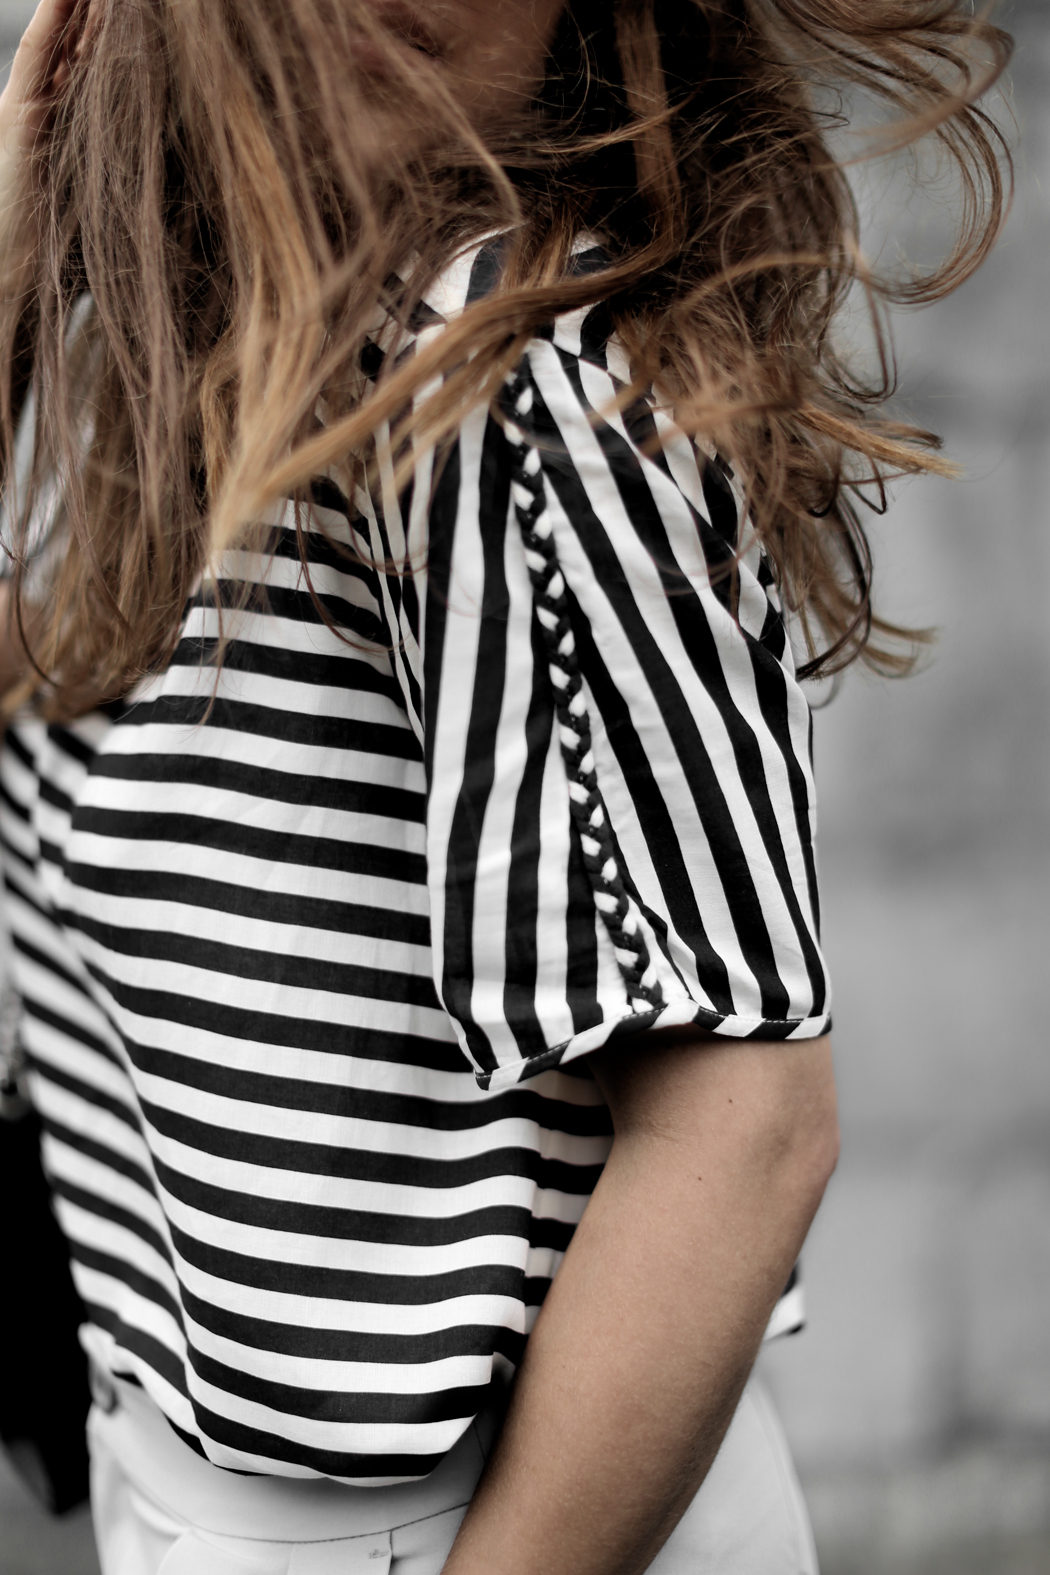 The Dashing Rider Striped Simple Shirt Outfit